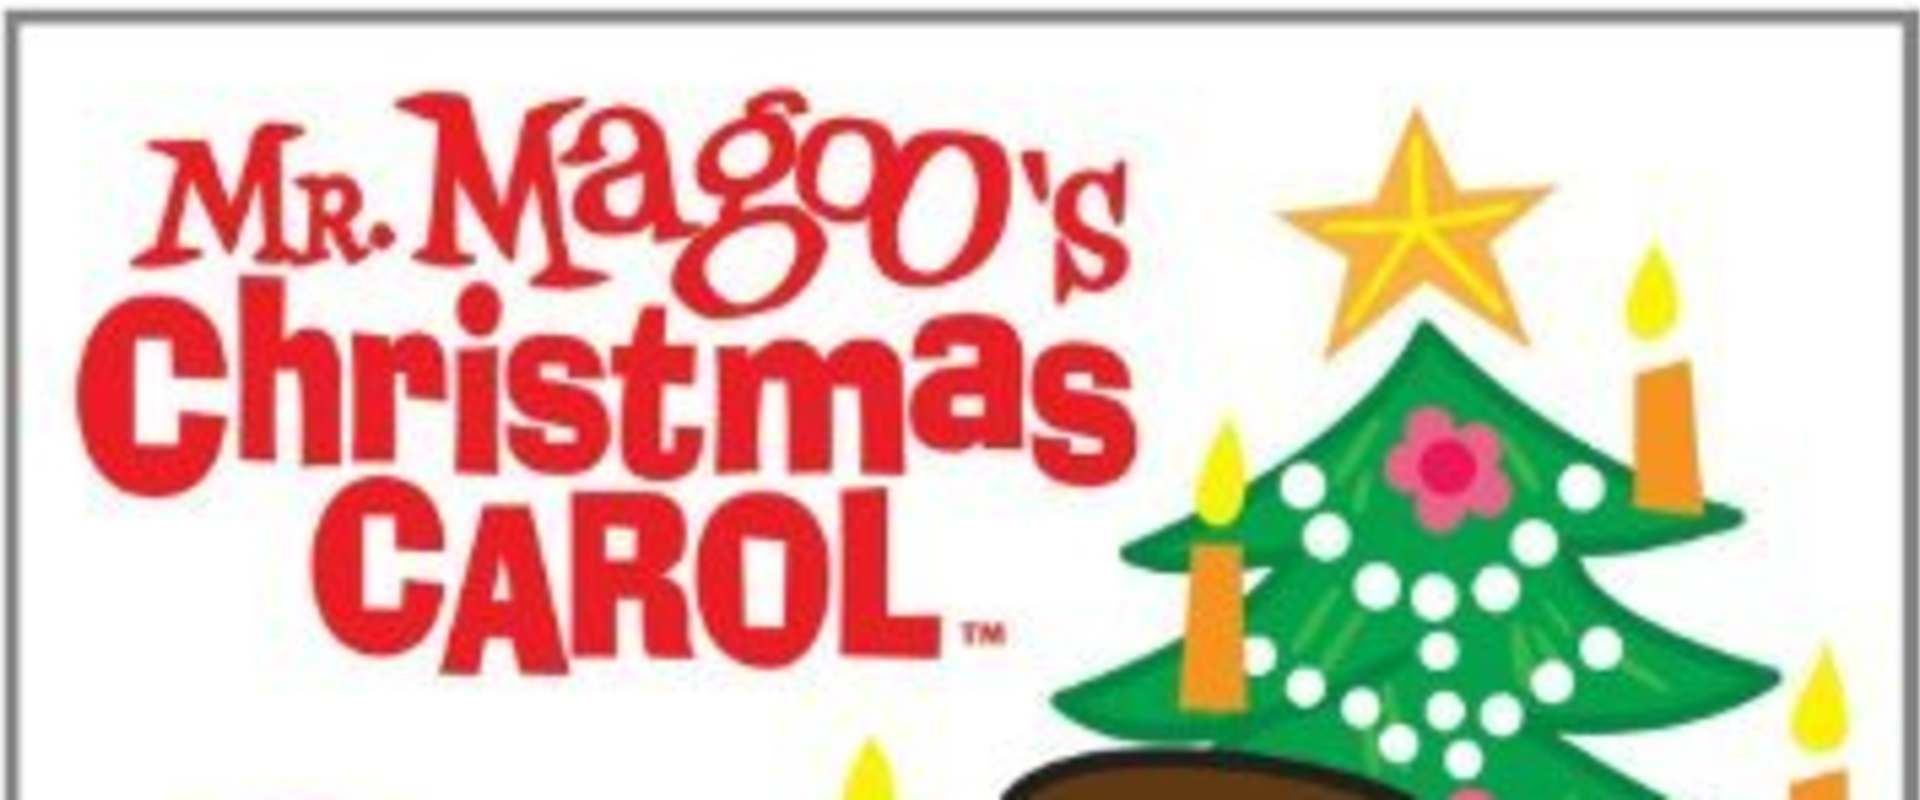 Mister Magoo's Christmas Carol background 2